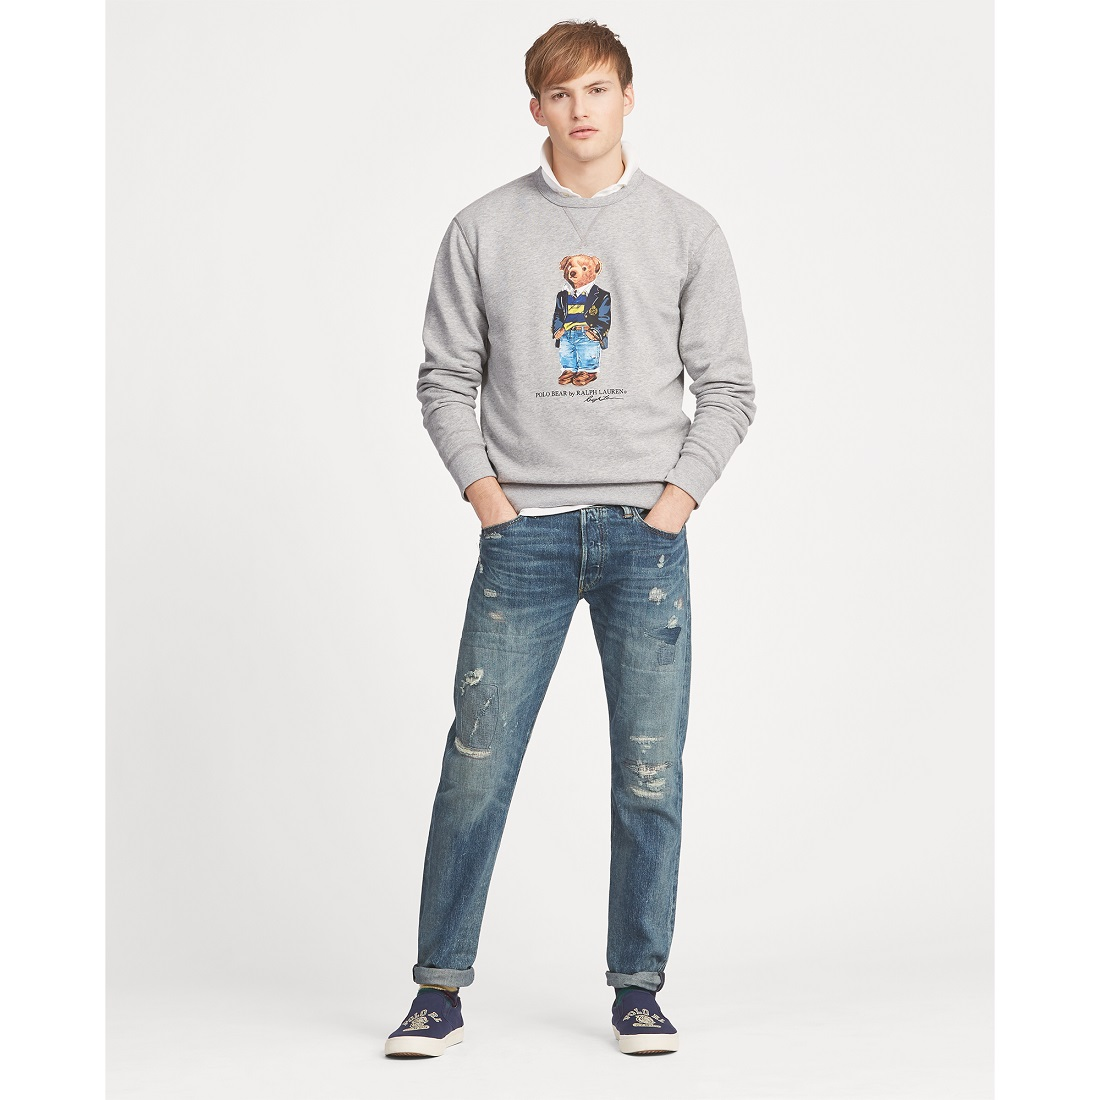 edb5d4c823d8 Sweat Polo Bear preppy en molleton Polo Ralph Lauren - Sweat Homme ...